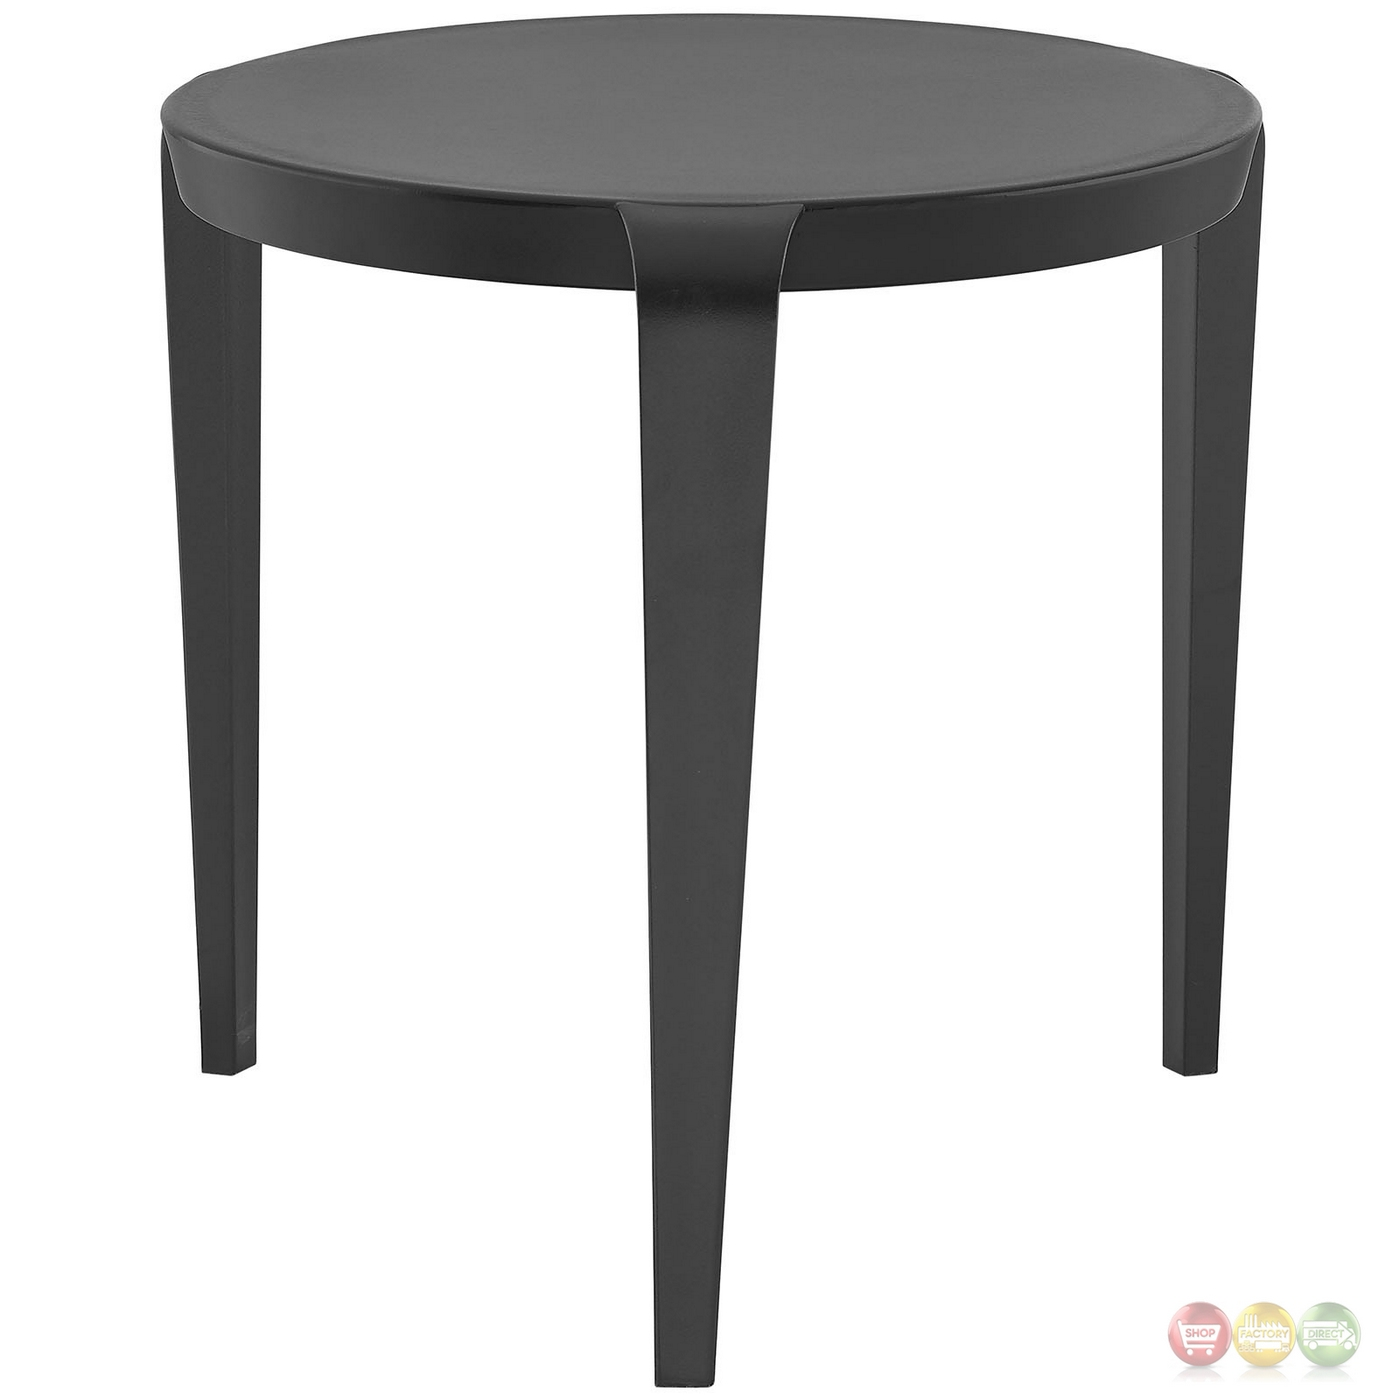 Black Modern Side Table Spin Contemporary 3 Legged Round Plastic Side Table Black